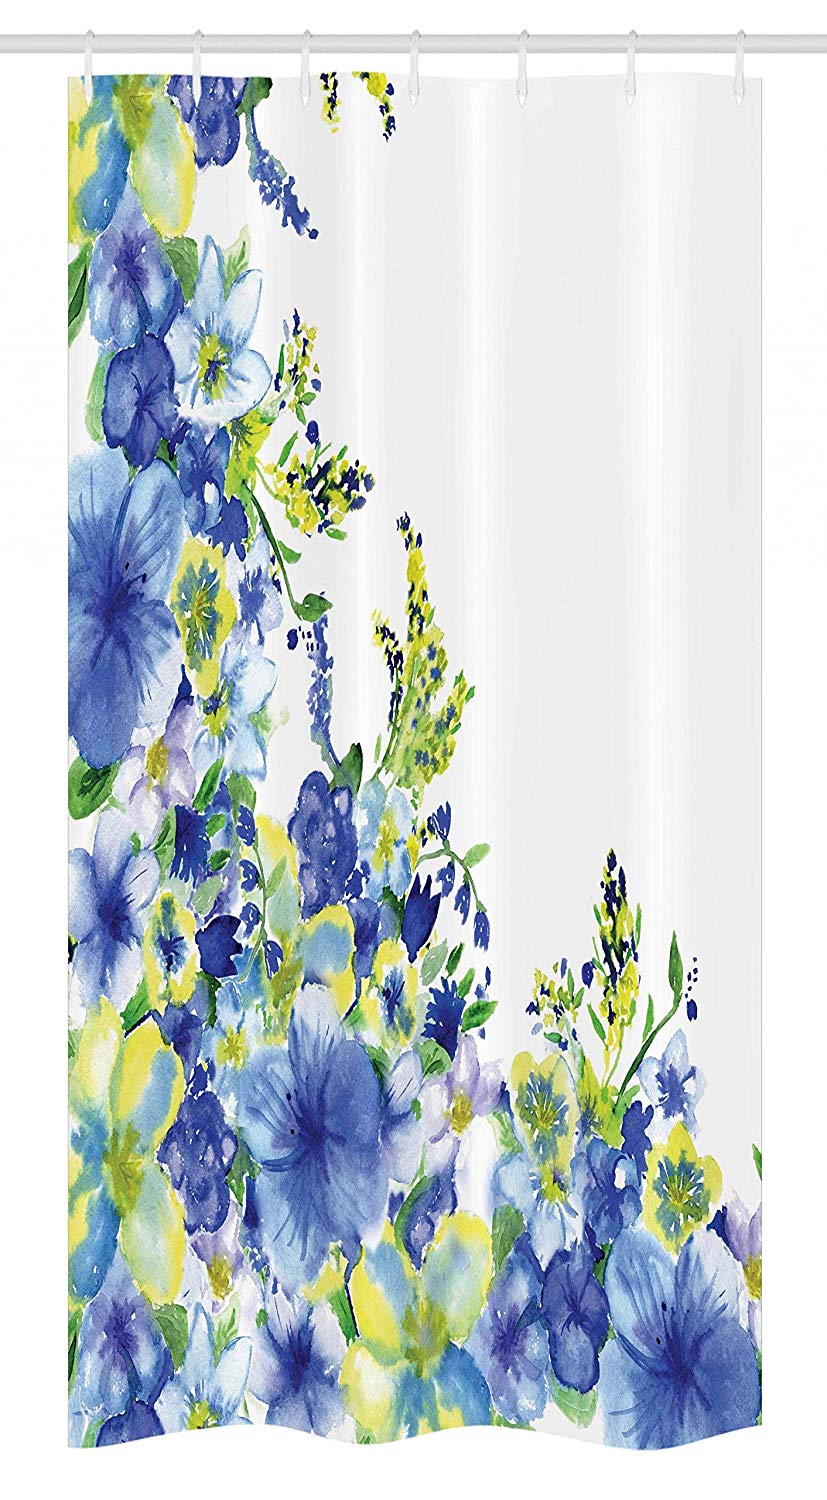 "Ambesonne Watercolor Flower Stall Shower Curtain, Motley Floret Motifs with Splash Anemone Iris Revival of Nature Theme, Fabric Bathroom Decor Set with Hooks, 36"" X 72"", Blue Yellow"